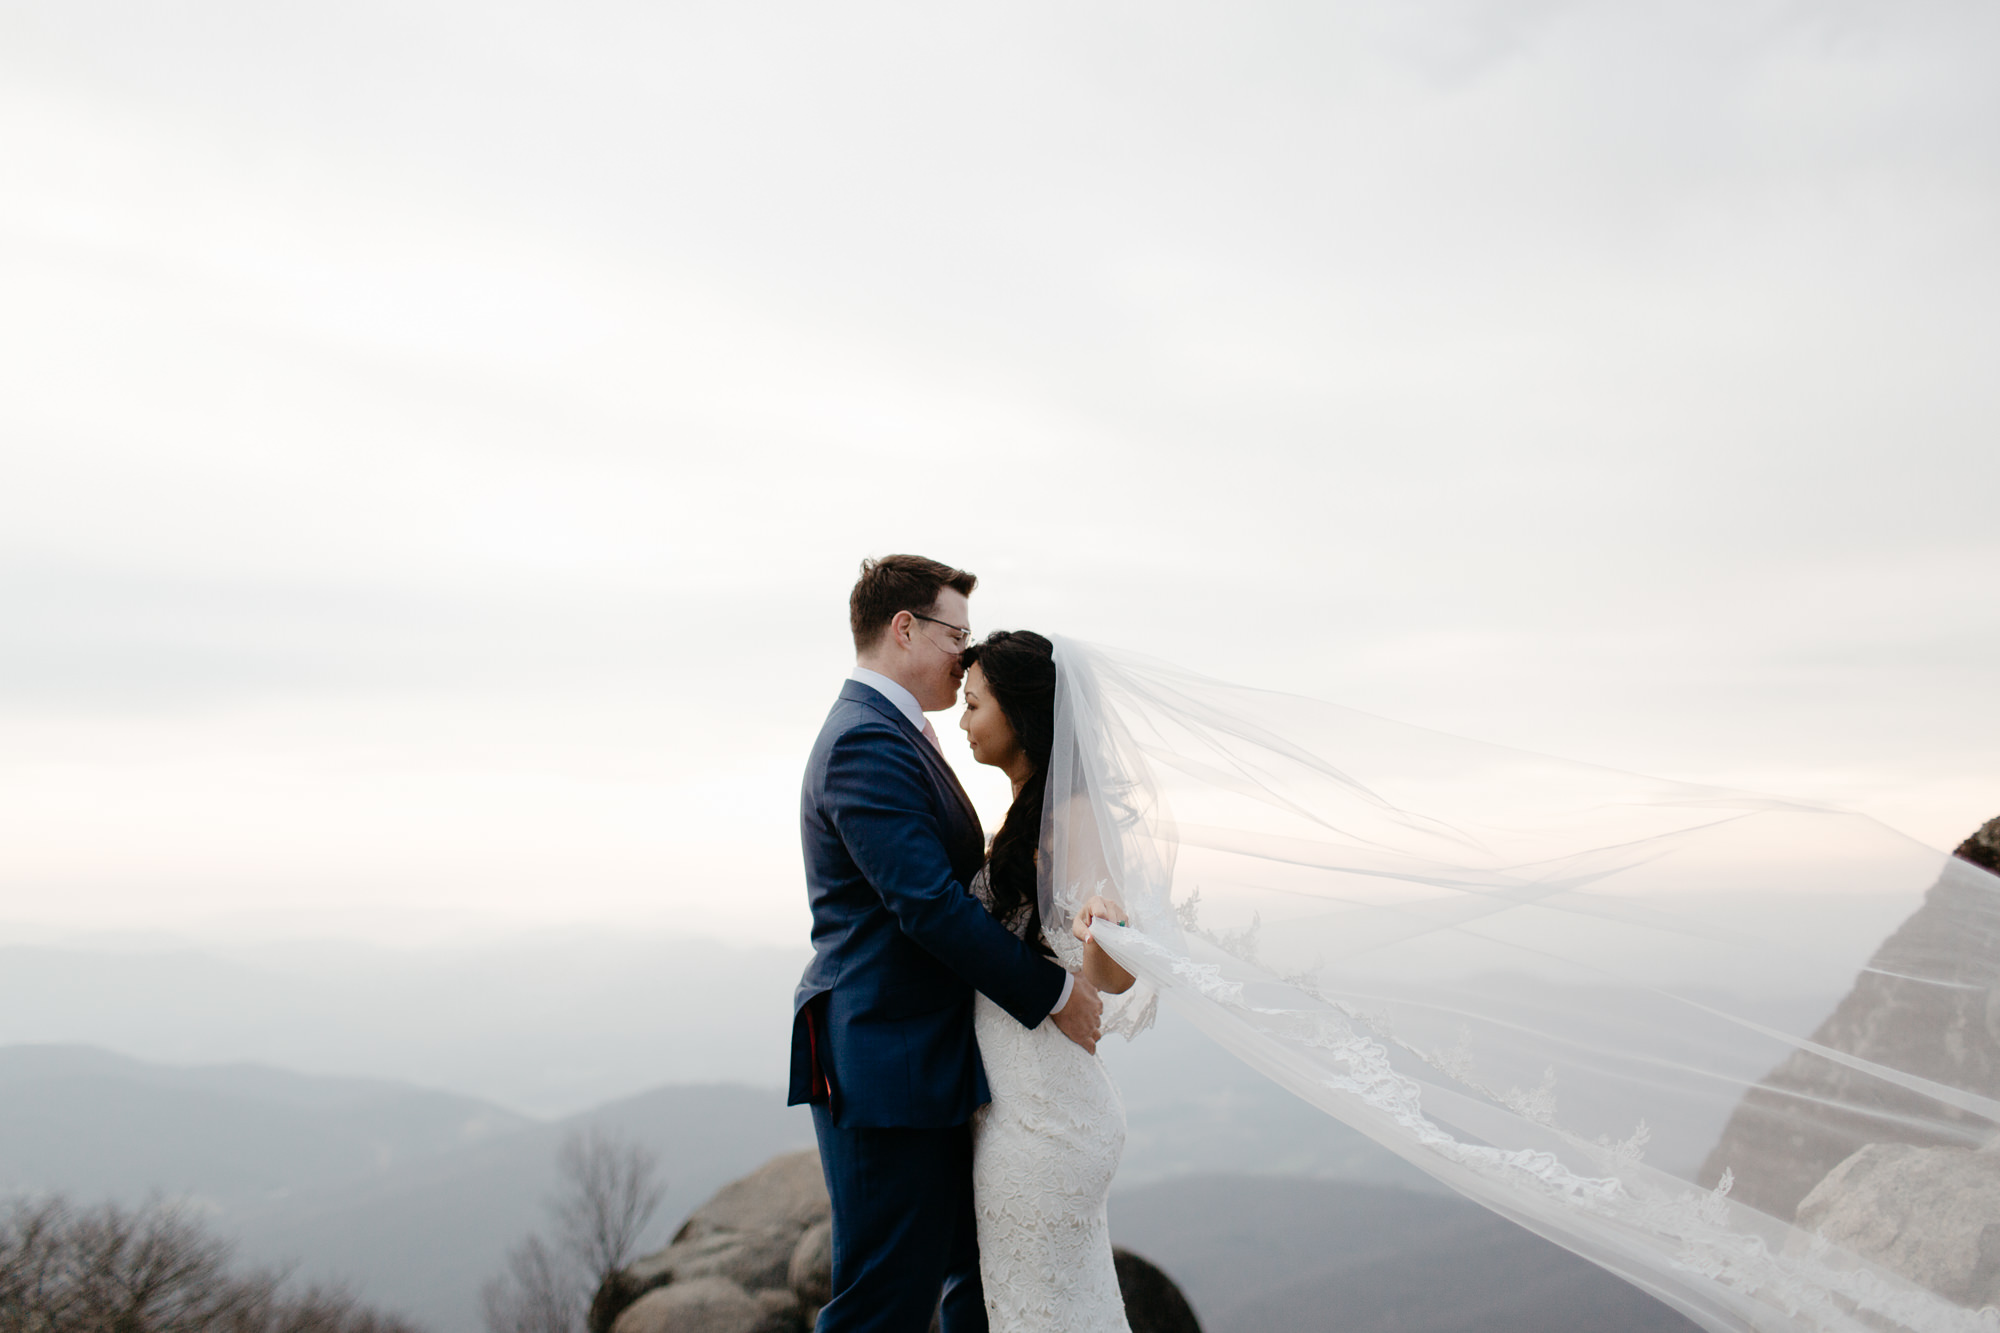 Peaks-of-Otter-Virginia-Of-Fate-and-Chaos-Elopement-Sharp-Top-44.jpg